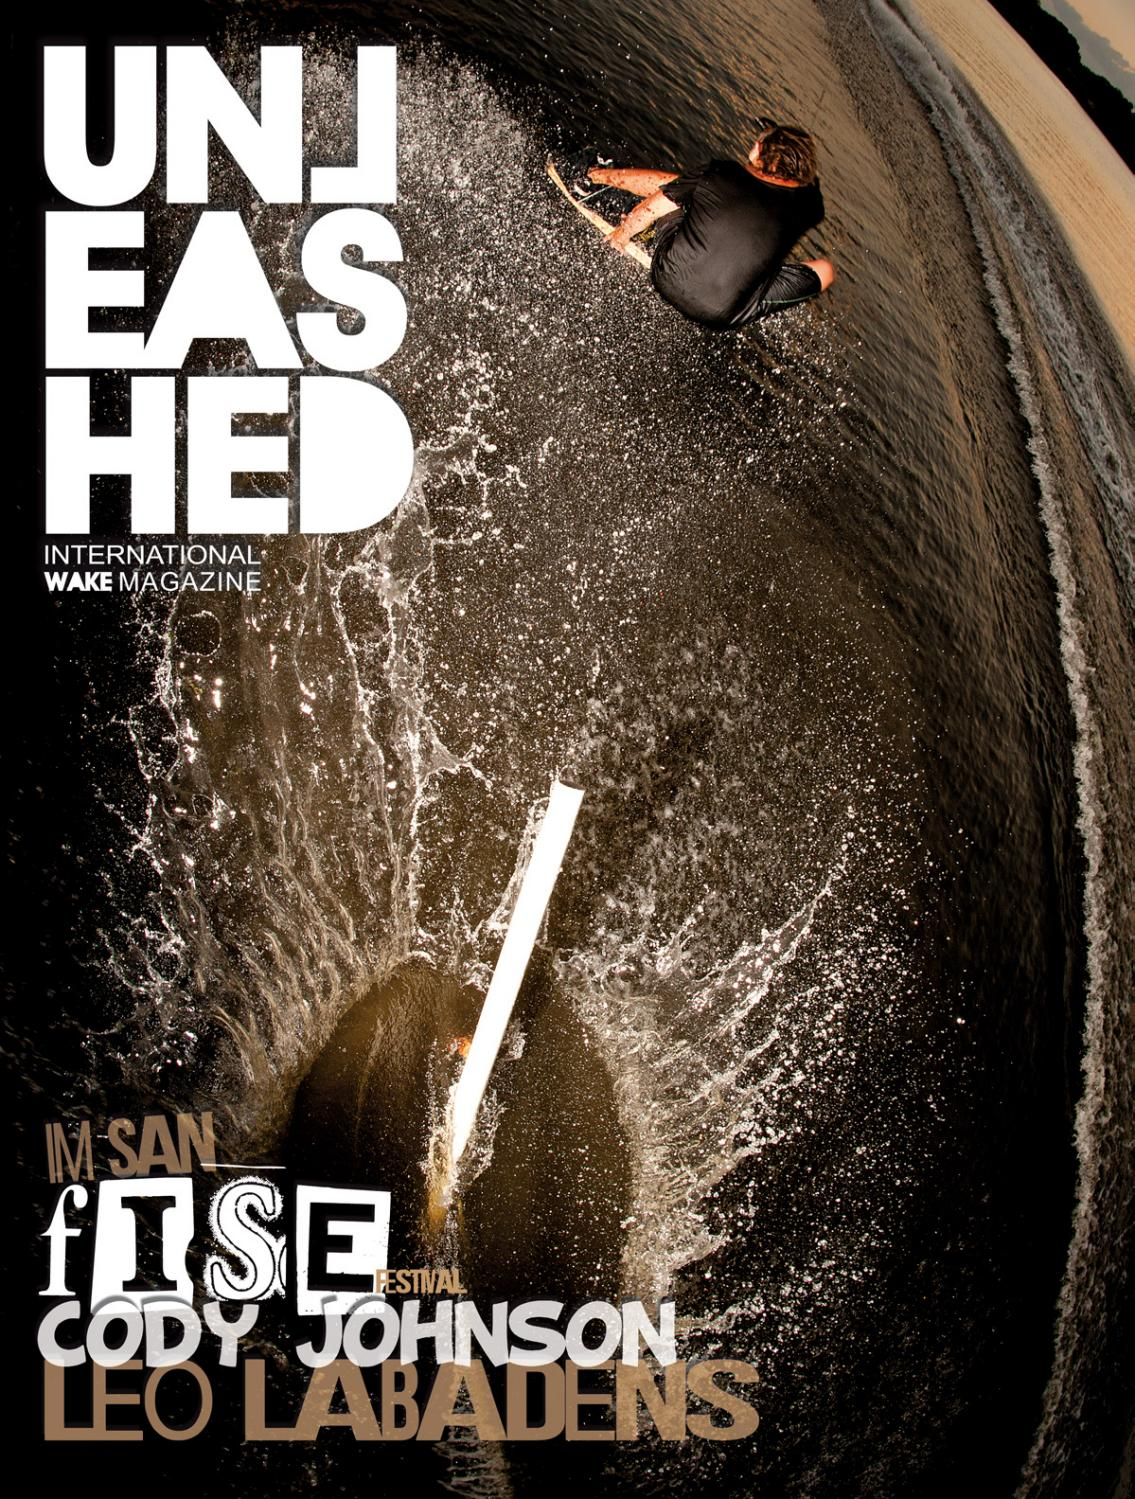 Kmtap Adapter Pack Unleashed Wake Mag 48 May June 2012 By Unleash